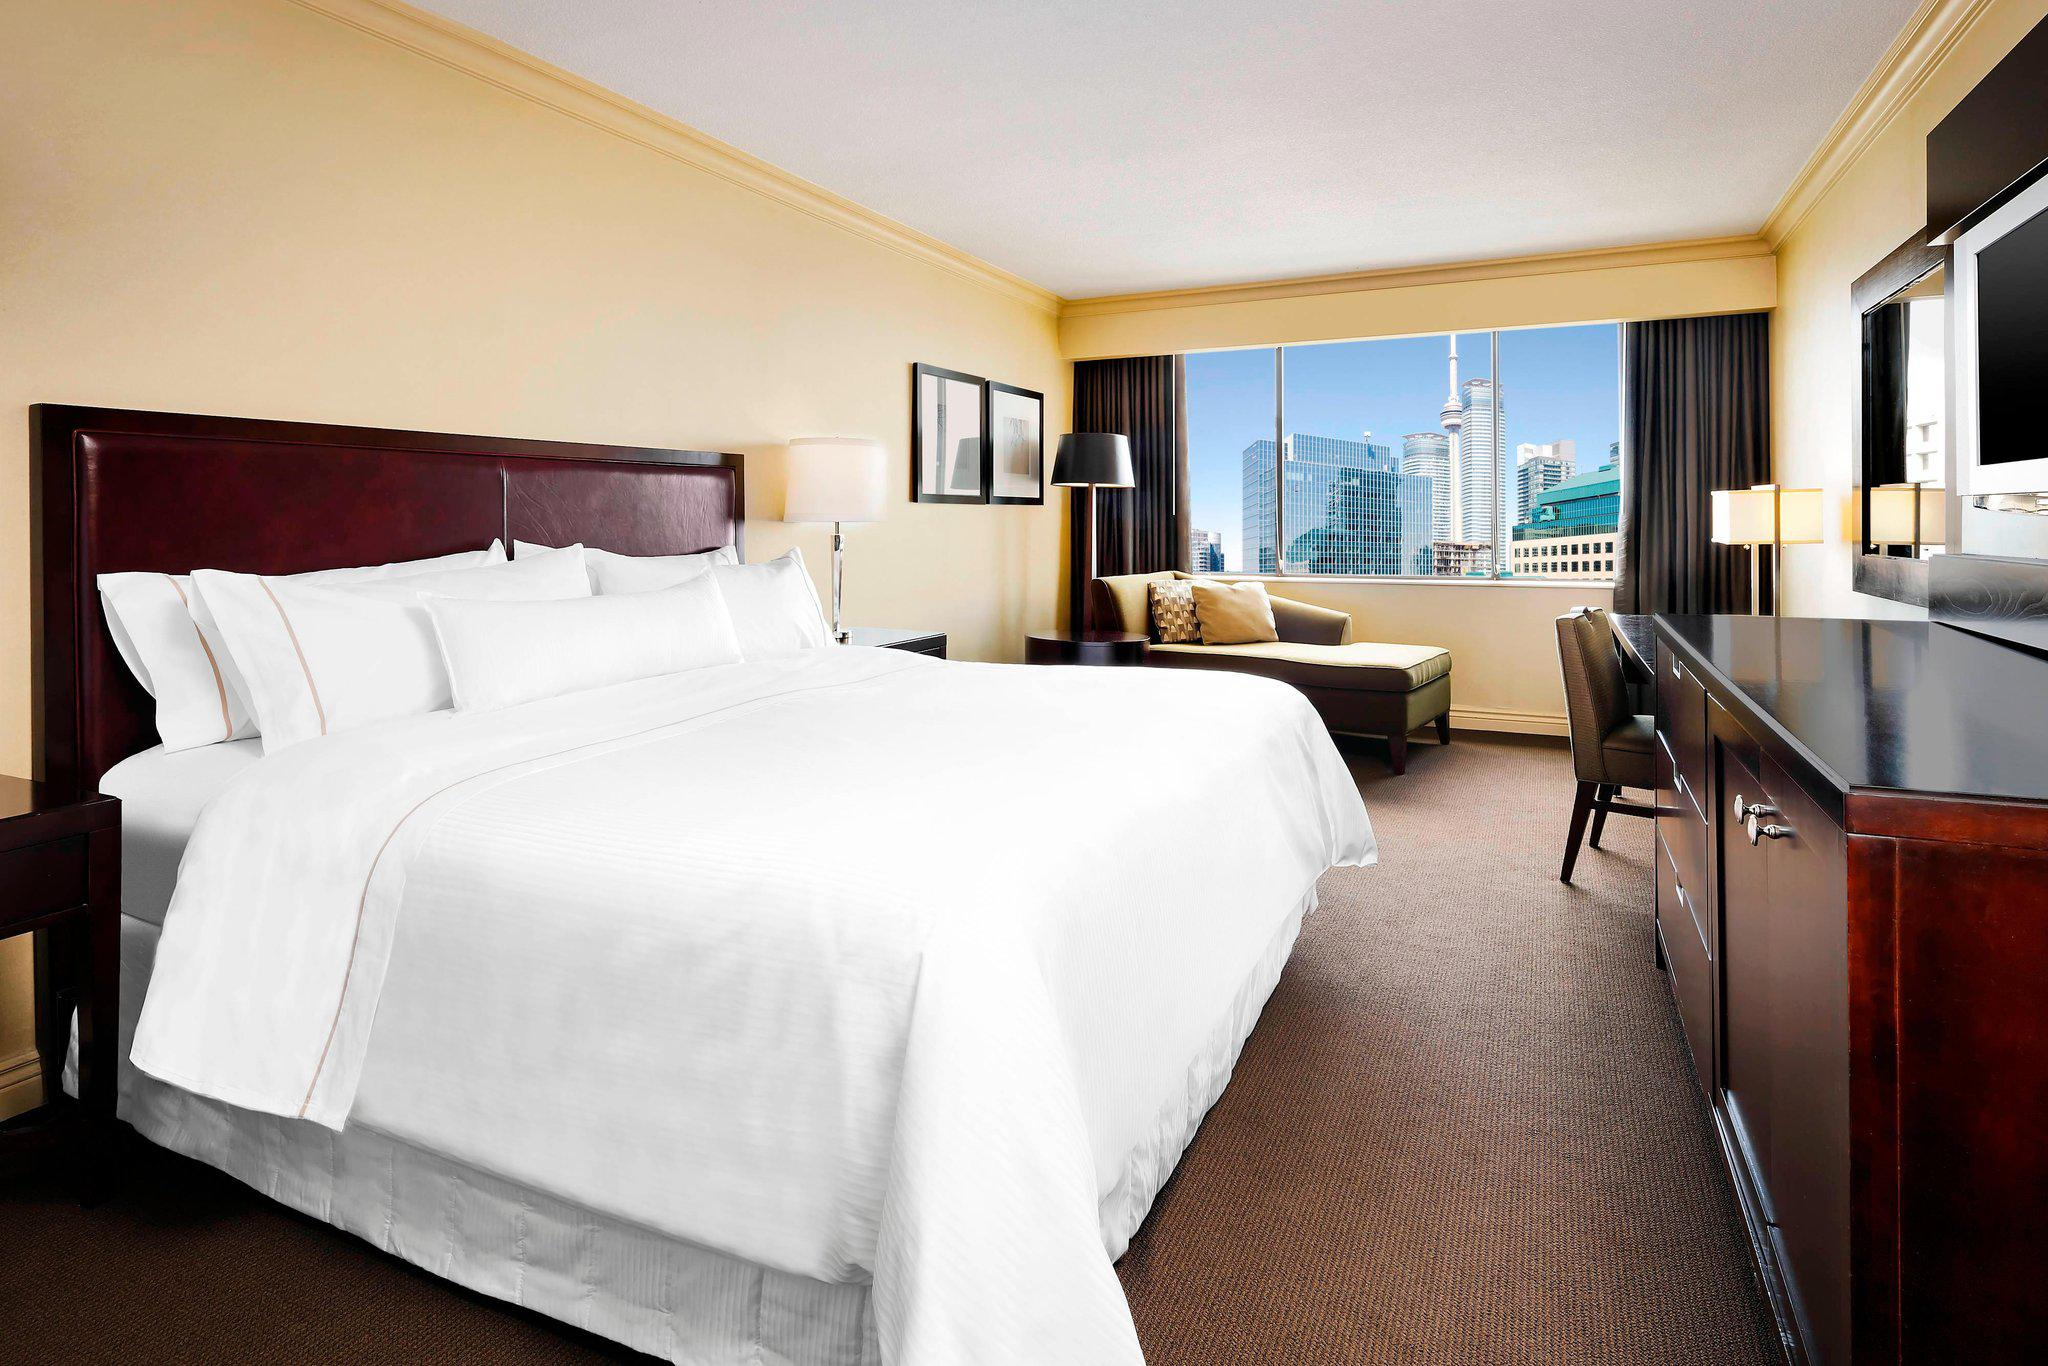 Images The Westin Harbour Castle, Toronto